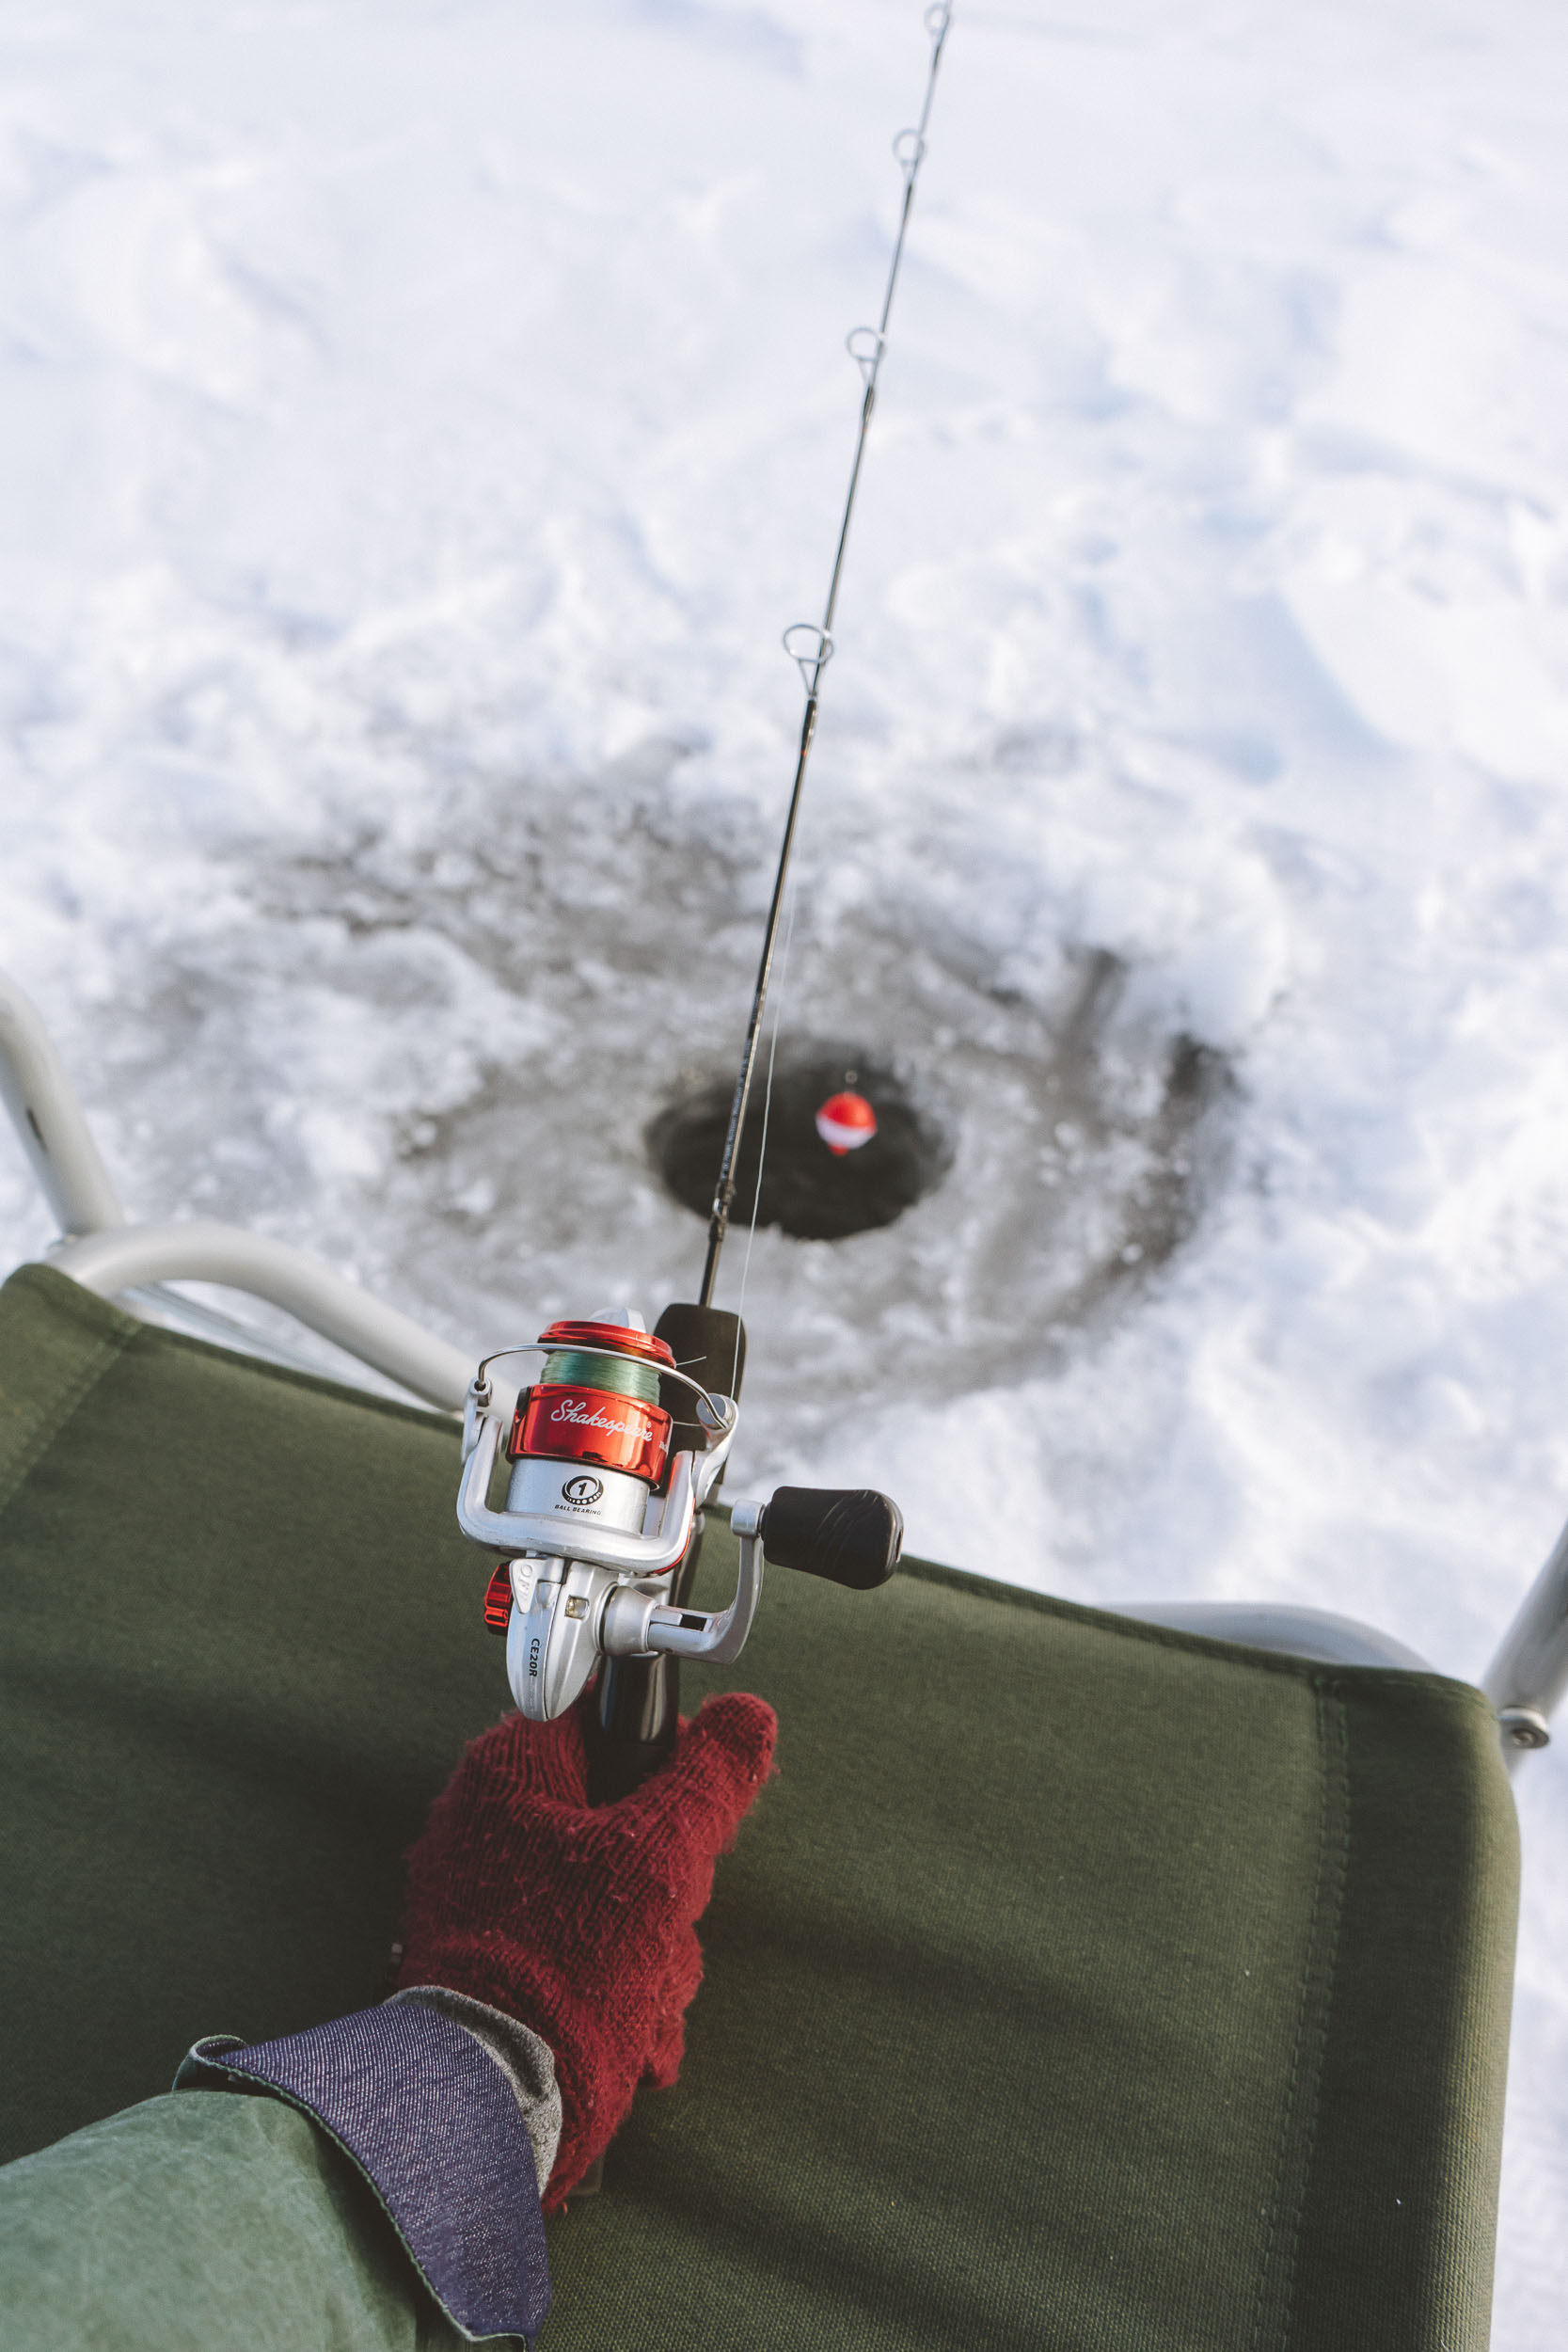 Ice fishing at Petrolia Lake near Winnett, Montana. Beautiful photos takes at Sunrise. Cute folding chair with glove, fishing rod, and bobber.